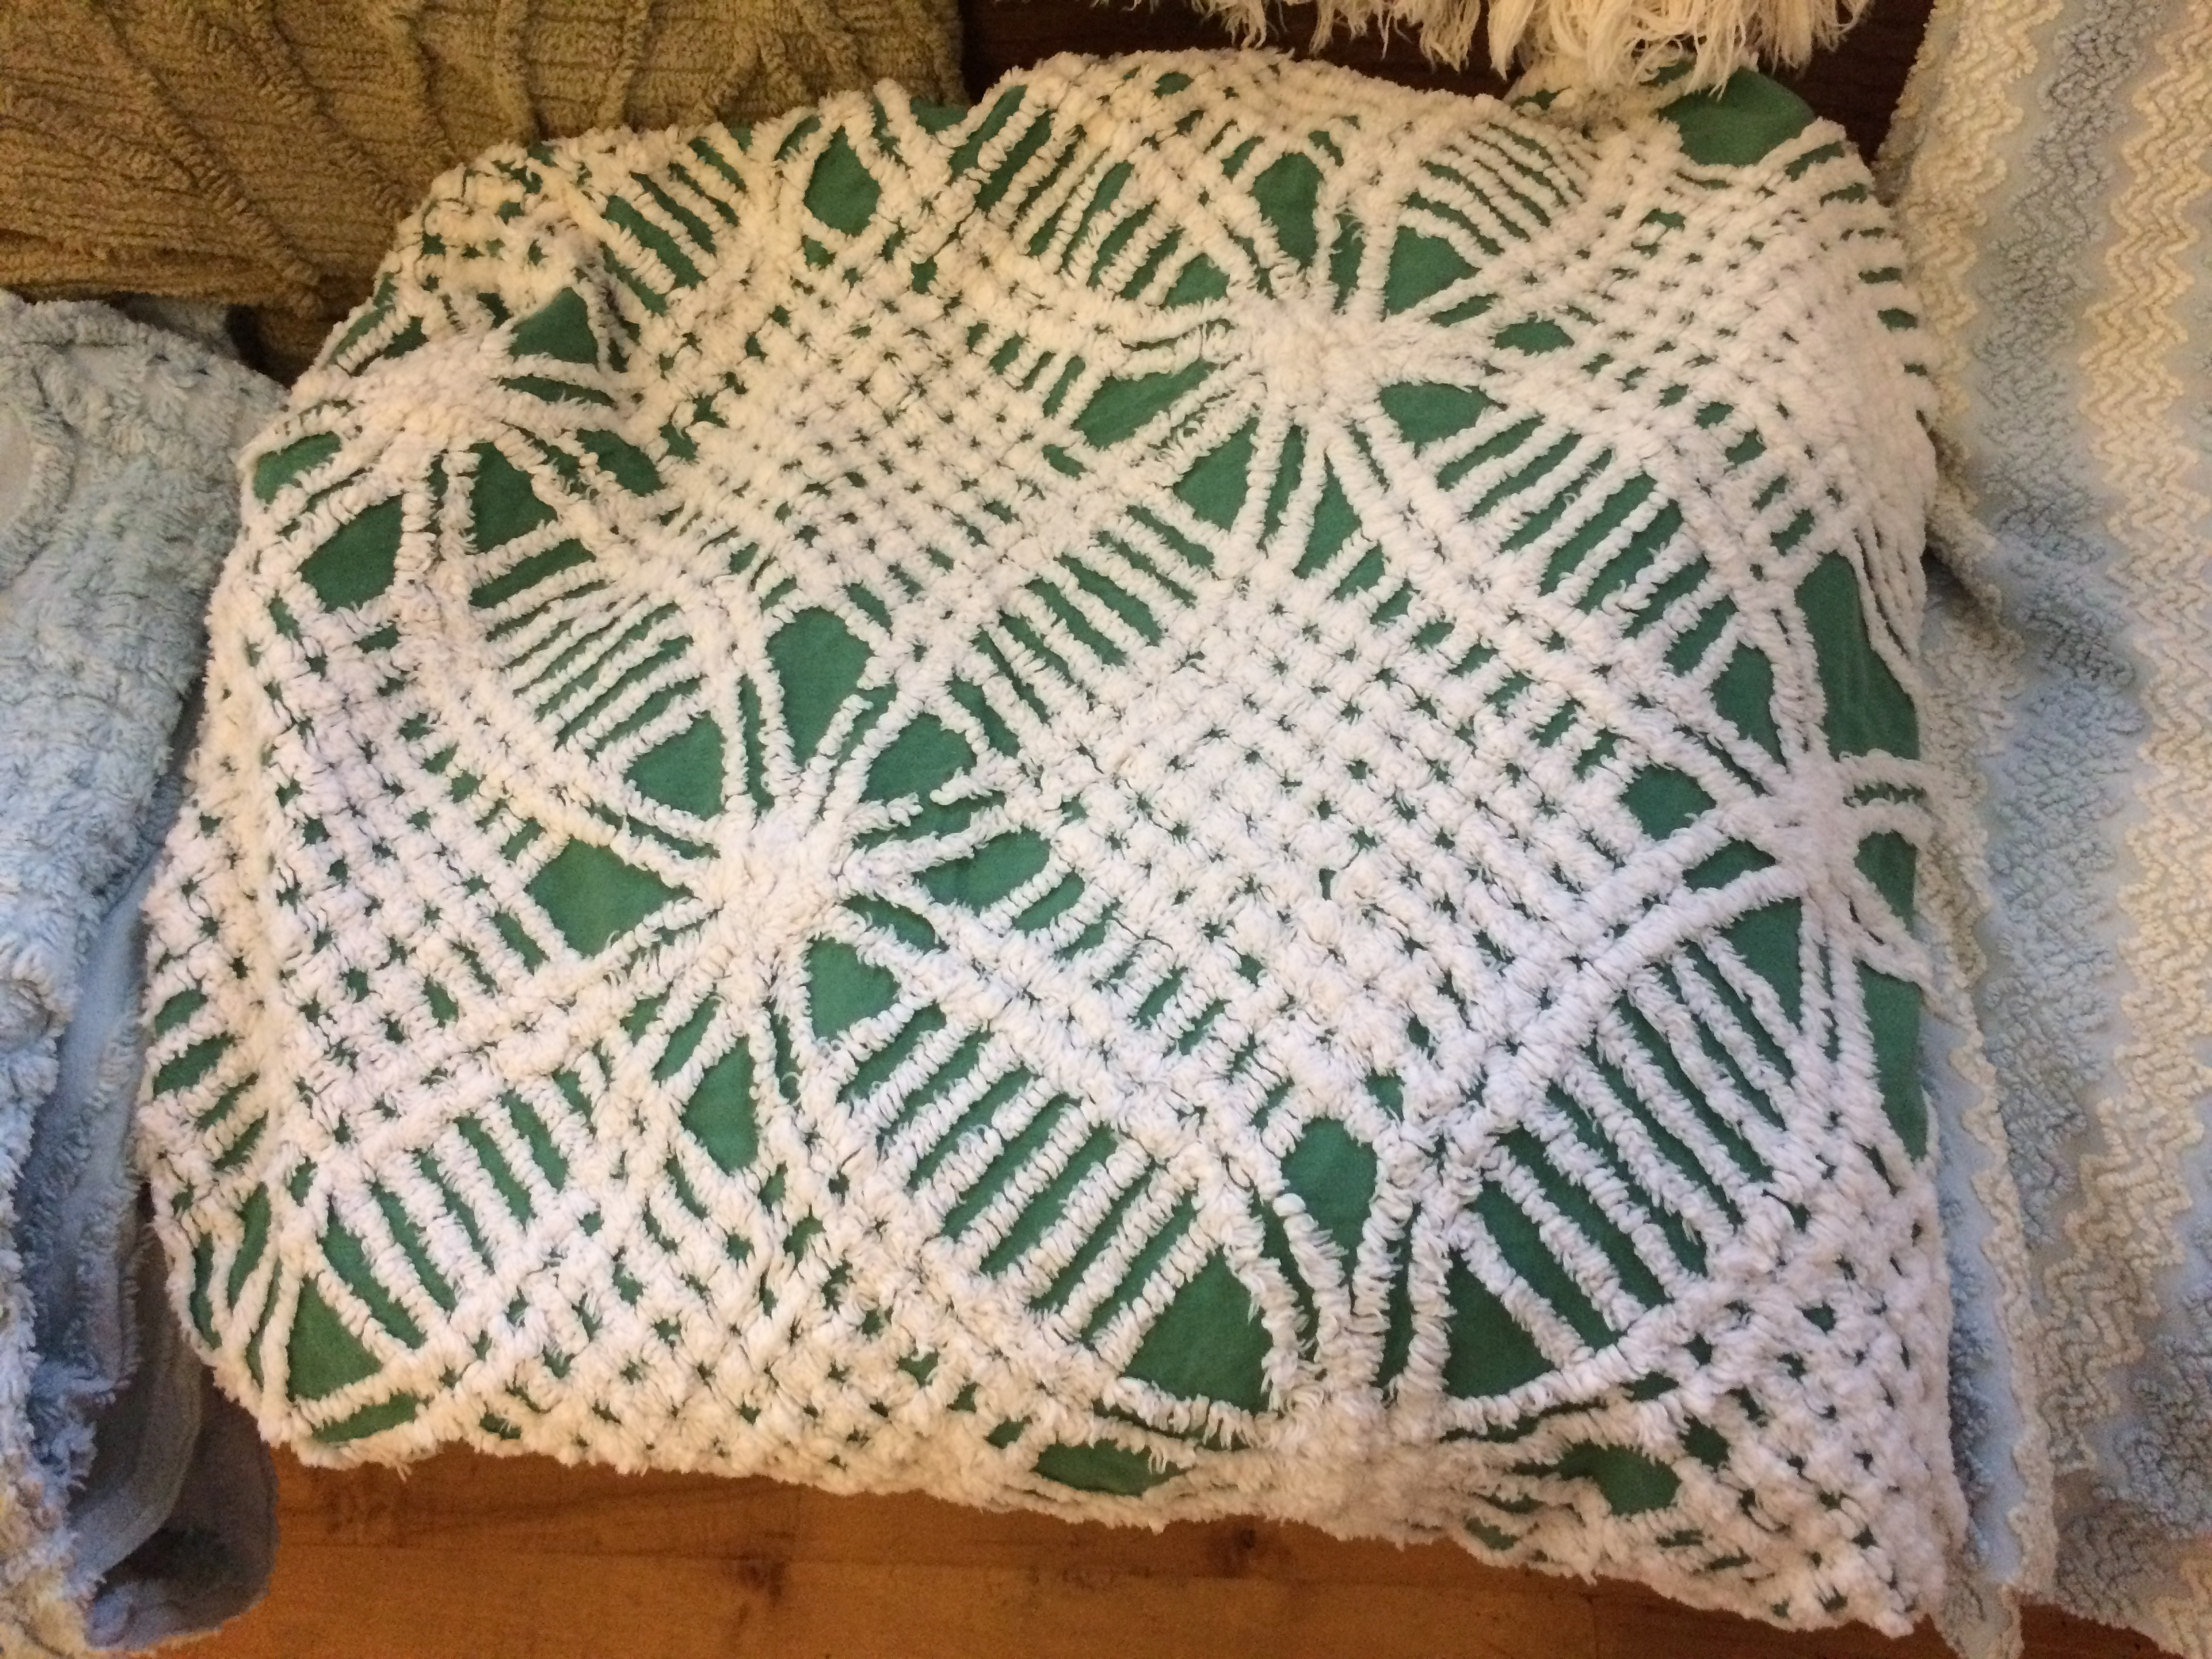 historical chenille bedspreads exhibit looking for loaners door county pulse - Chenille Bedspreads